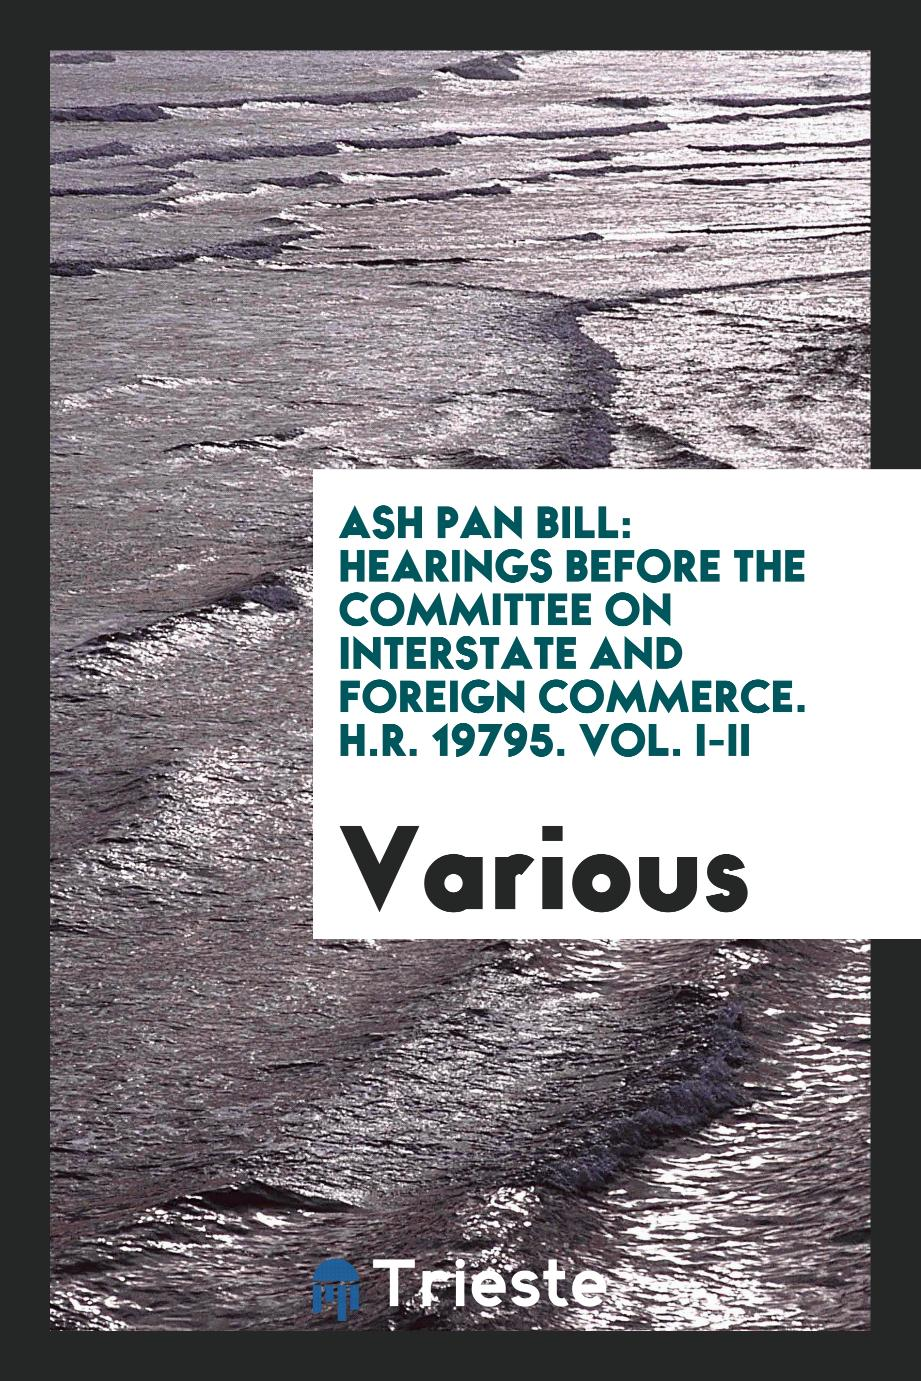 Ash Pan Bill: Hearings before the committee on interstate and foreign commerce. H.R. 19795. Vol. I-II